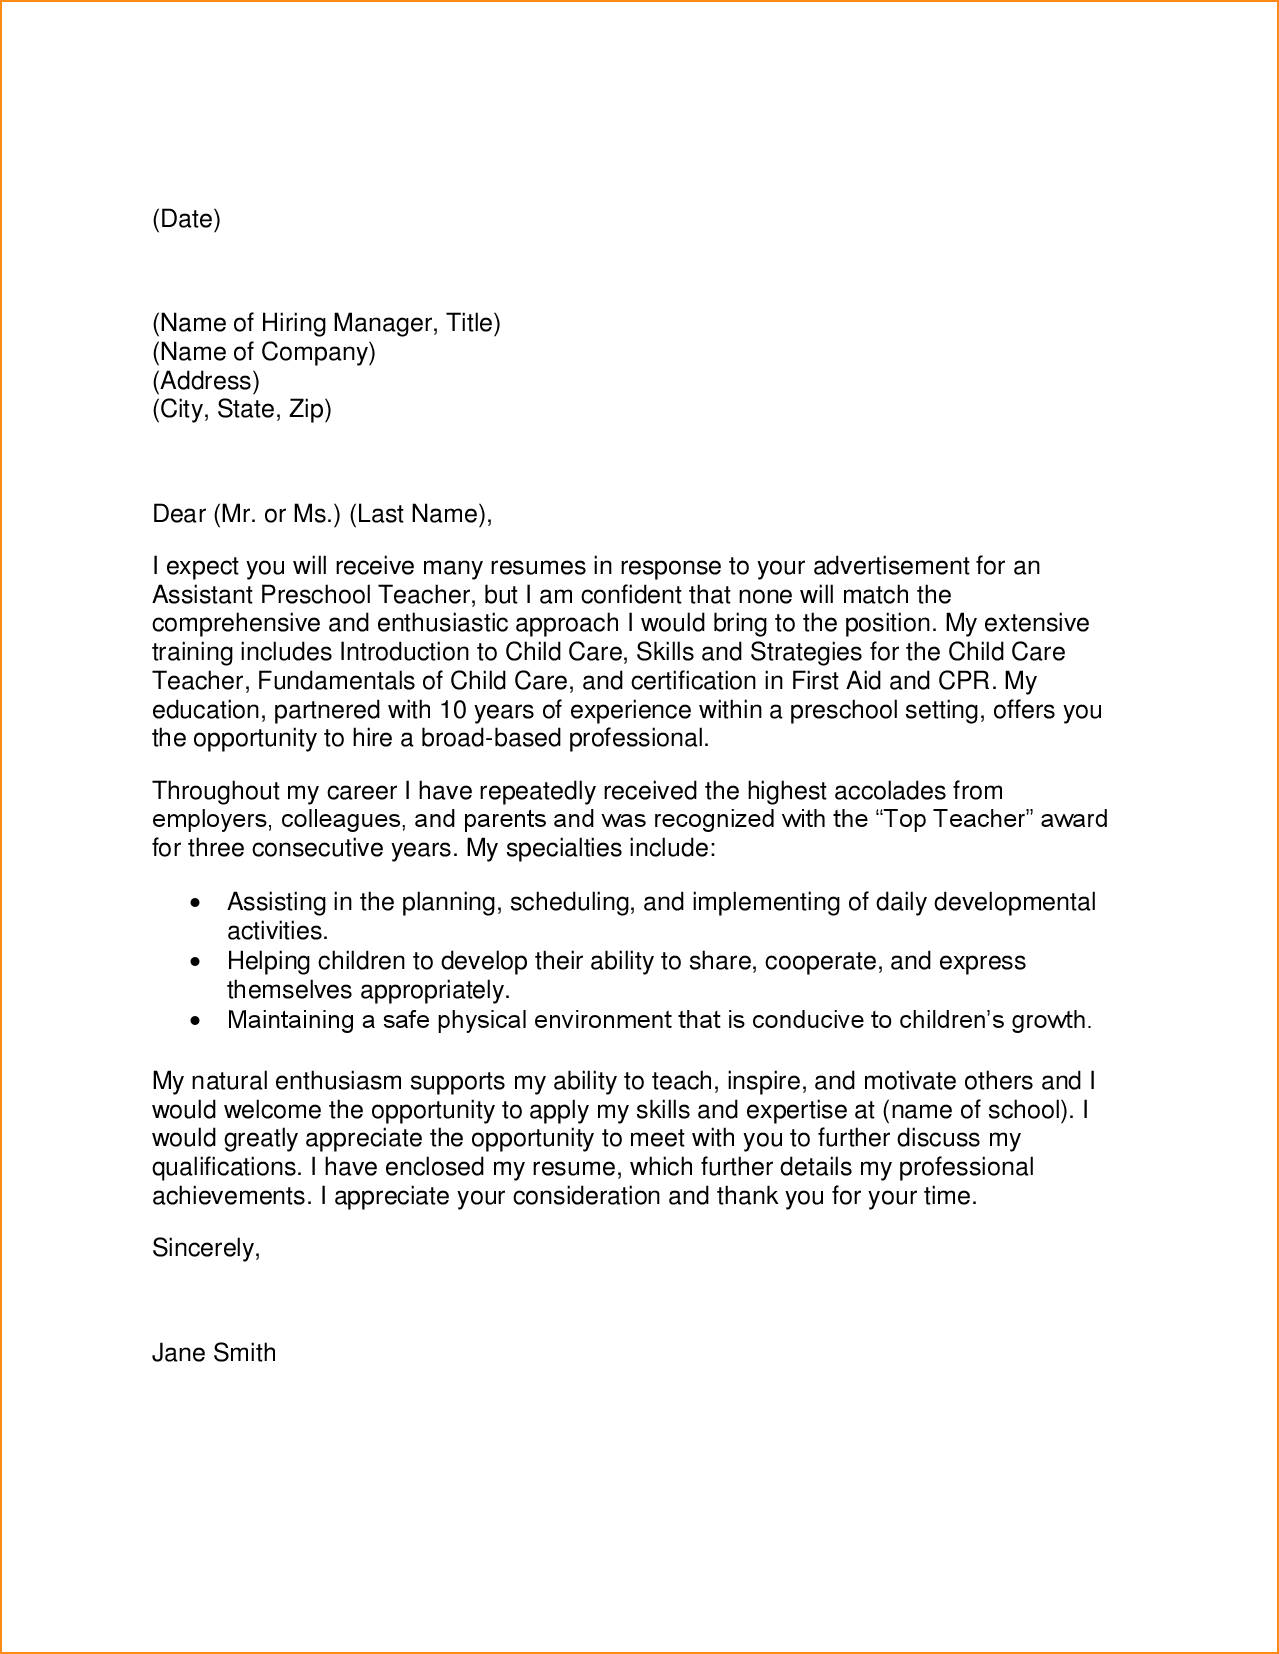 Art Production Manager Cover Letter | Cover Letter Examples By Real ...